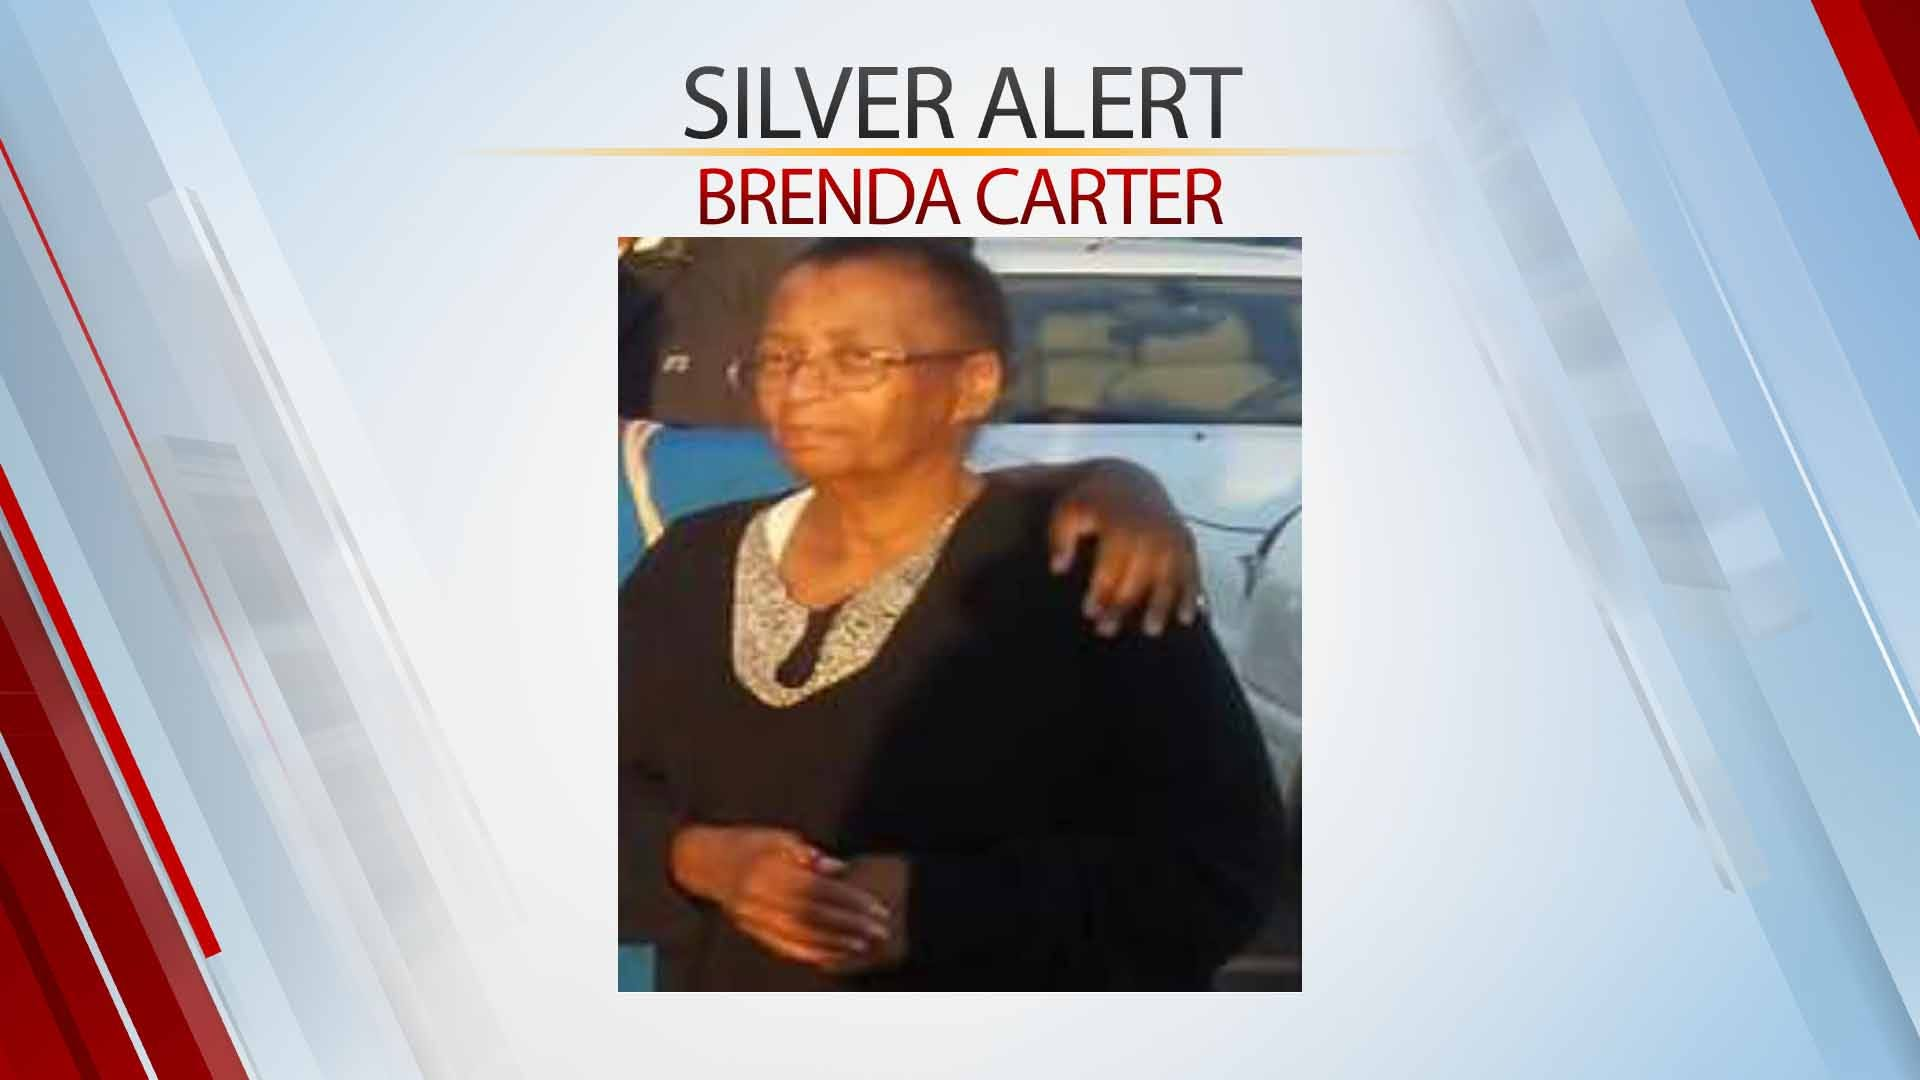 Missing Tulsa Woman With Alzheimer's Found After Silver Alert Issued